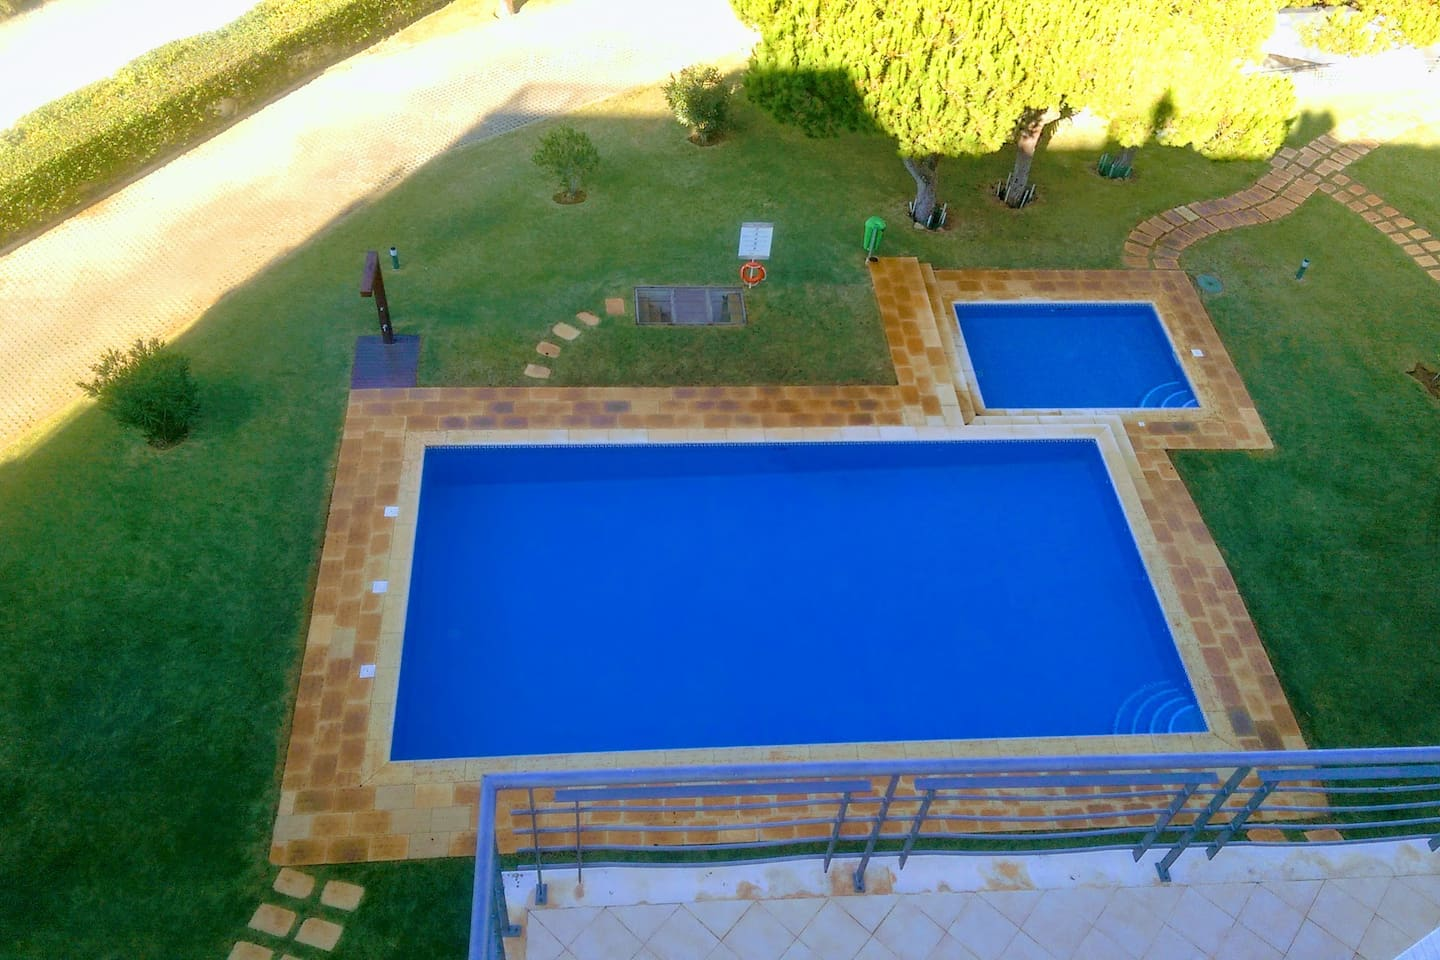 The front pool area, with separate children's pool